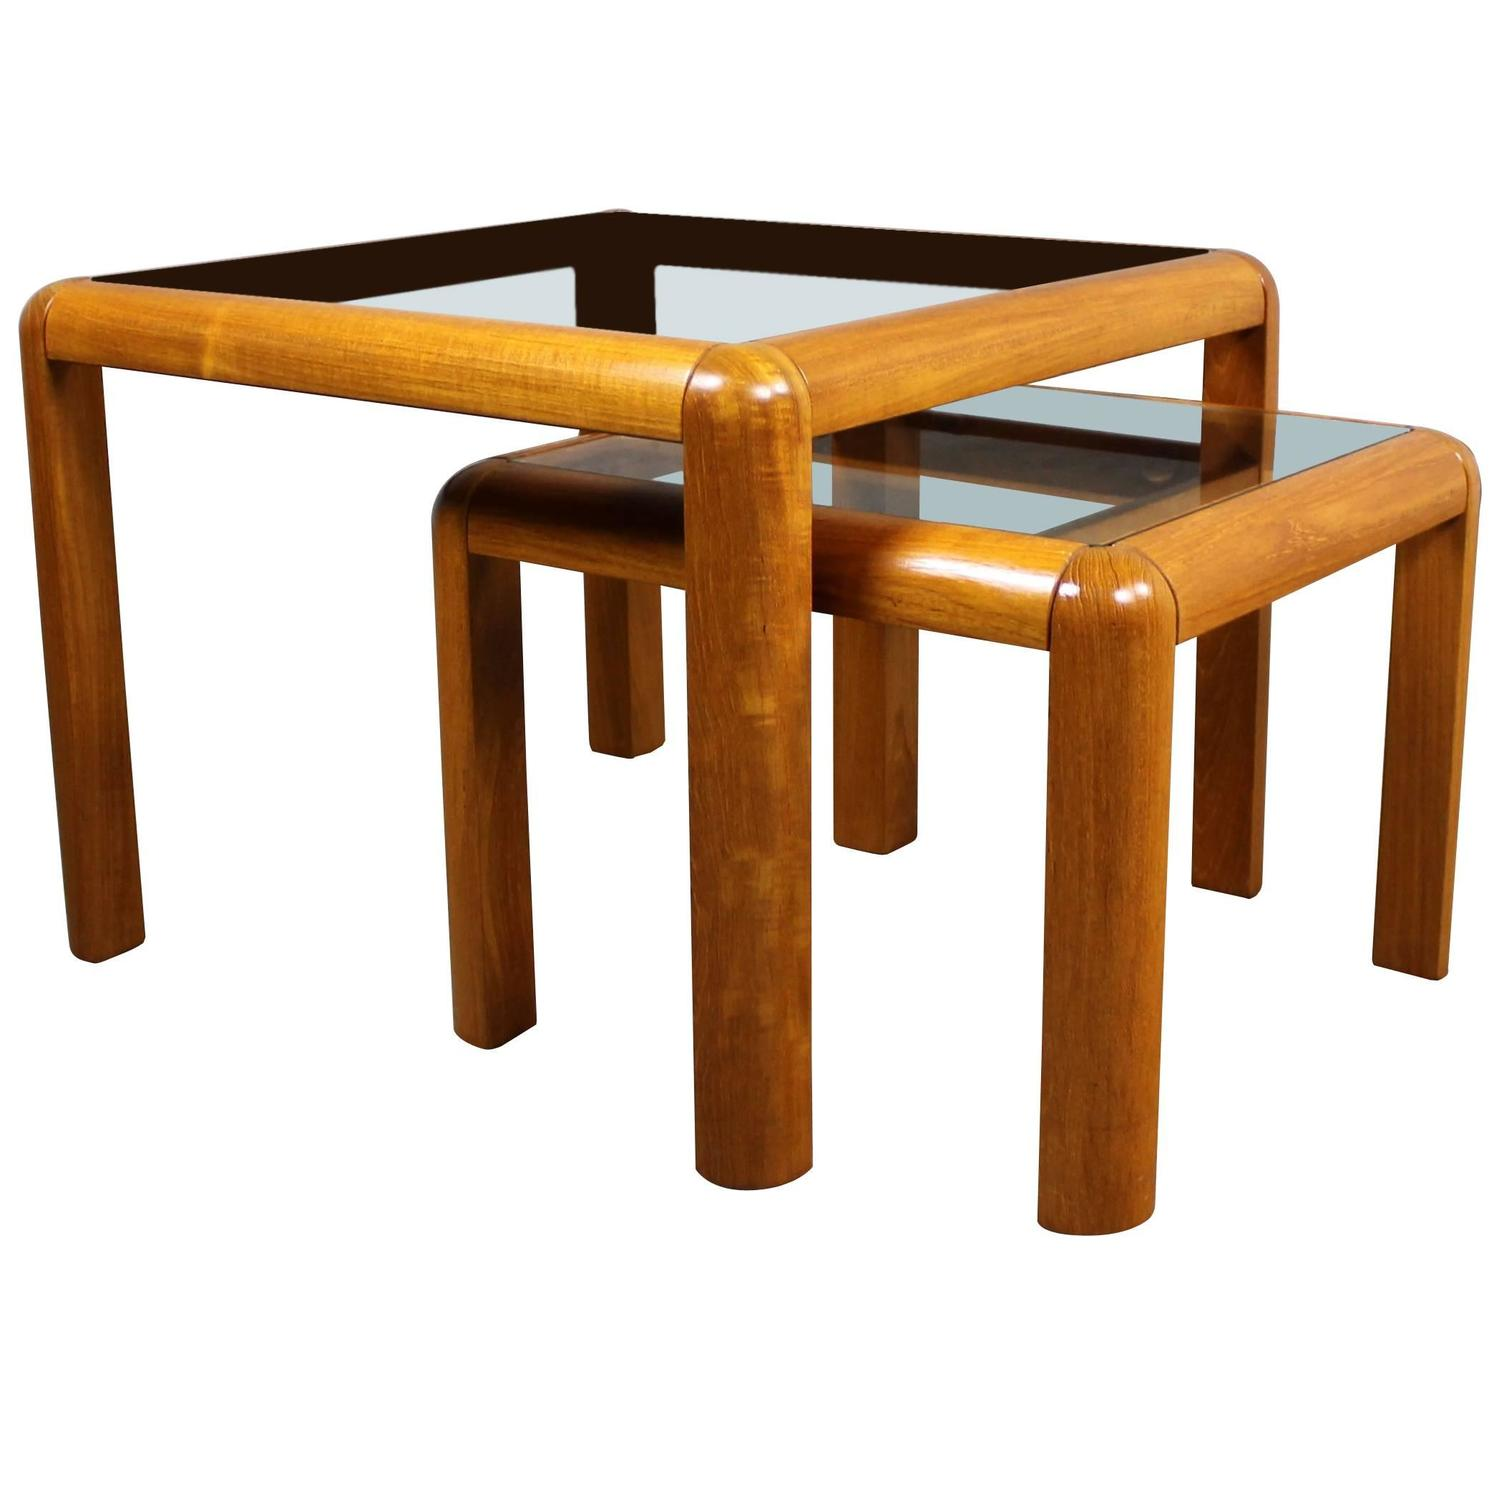 Vintage Danish Mid Century Modern Teak and Glass Square Nesting